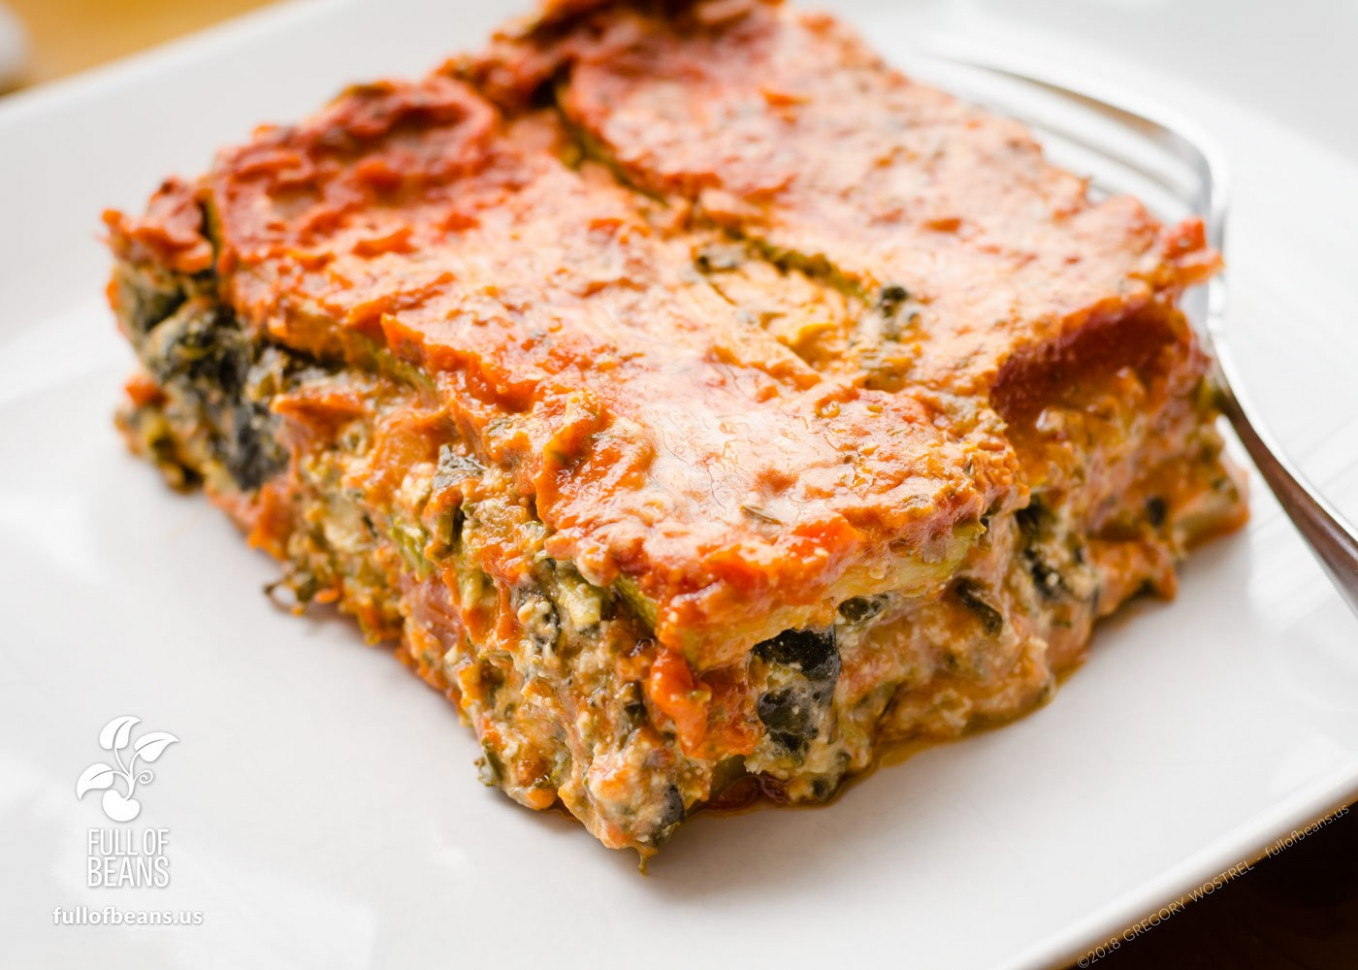 Vegan Gluten-Free Lasagna - recipes vegetarian lasagne